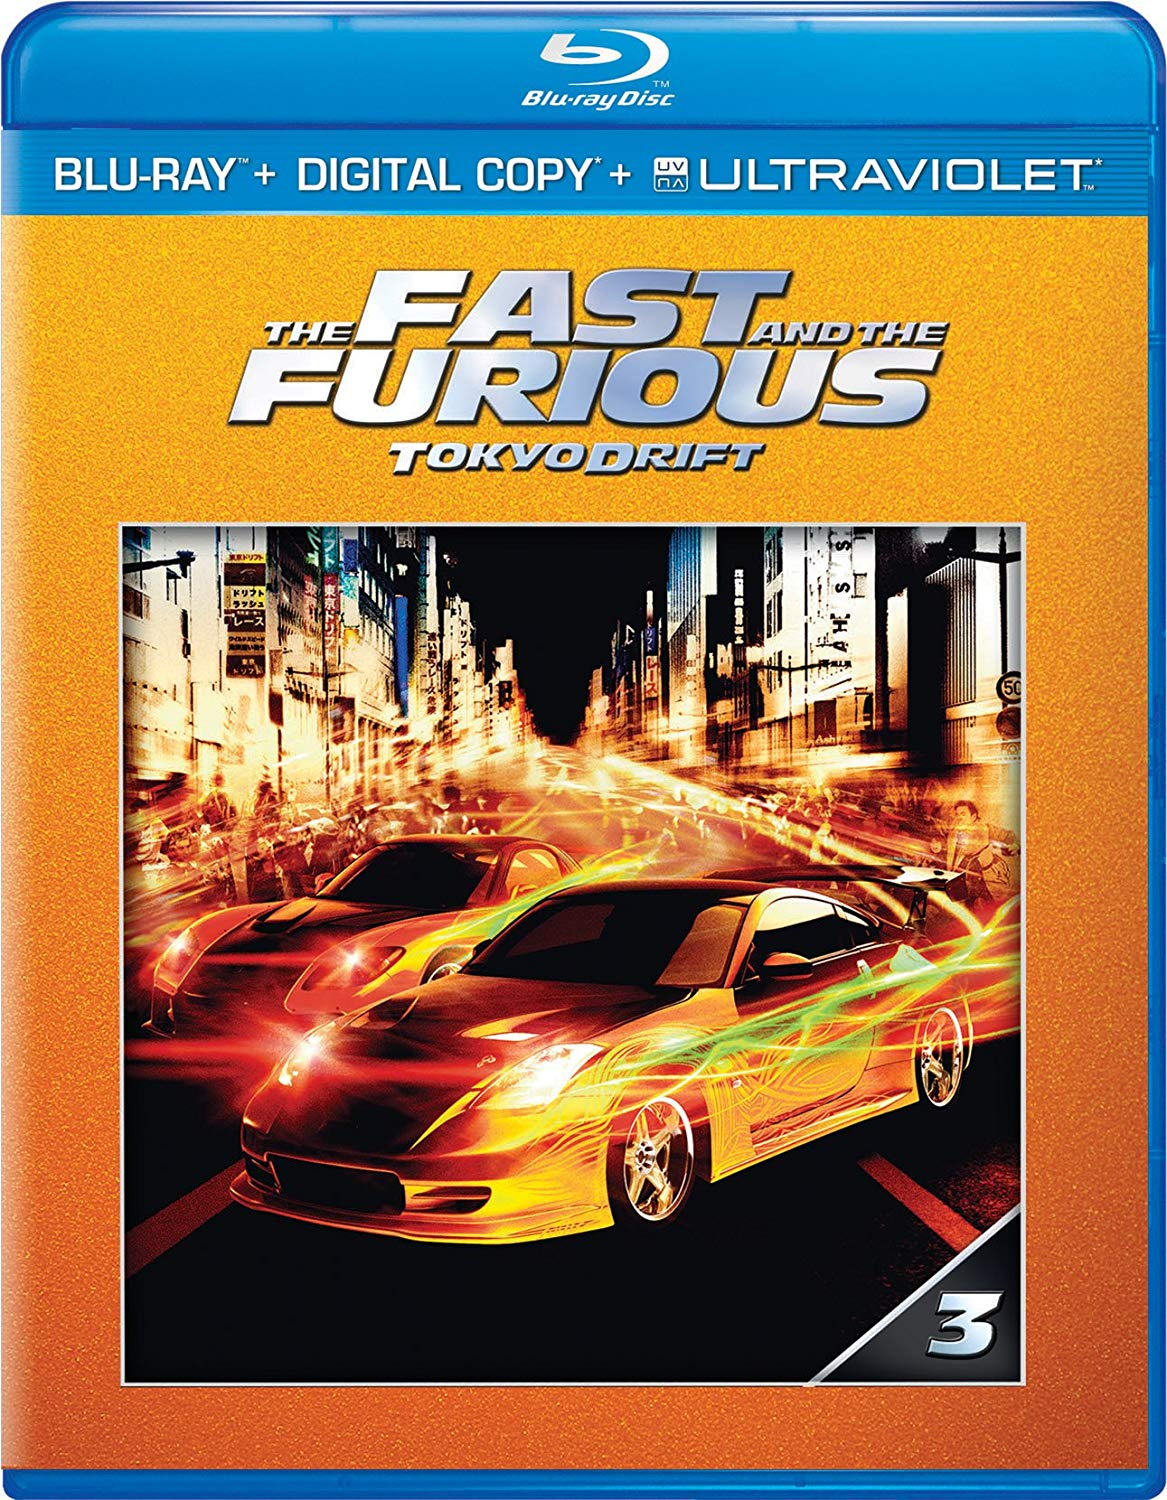 The Fast & The Furious [Movie] - The Fast and the Furious: Tokyo Drift